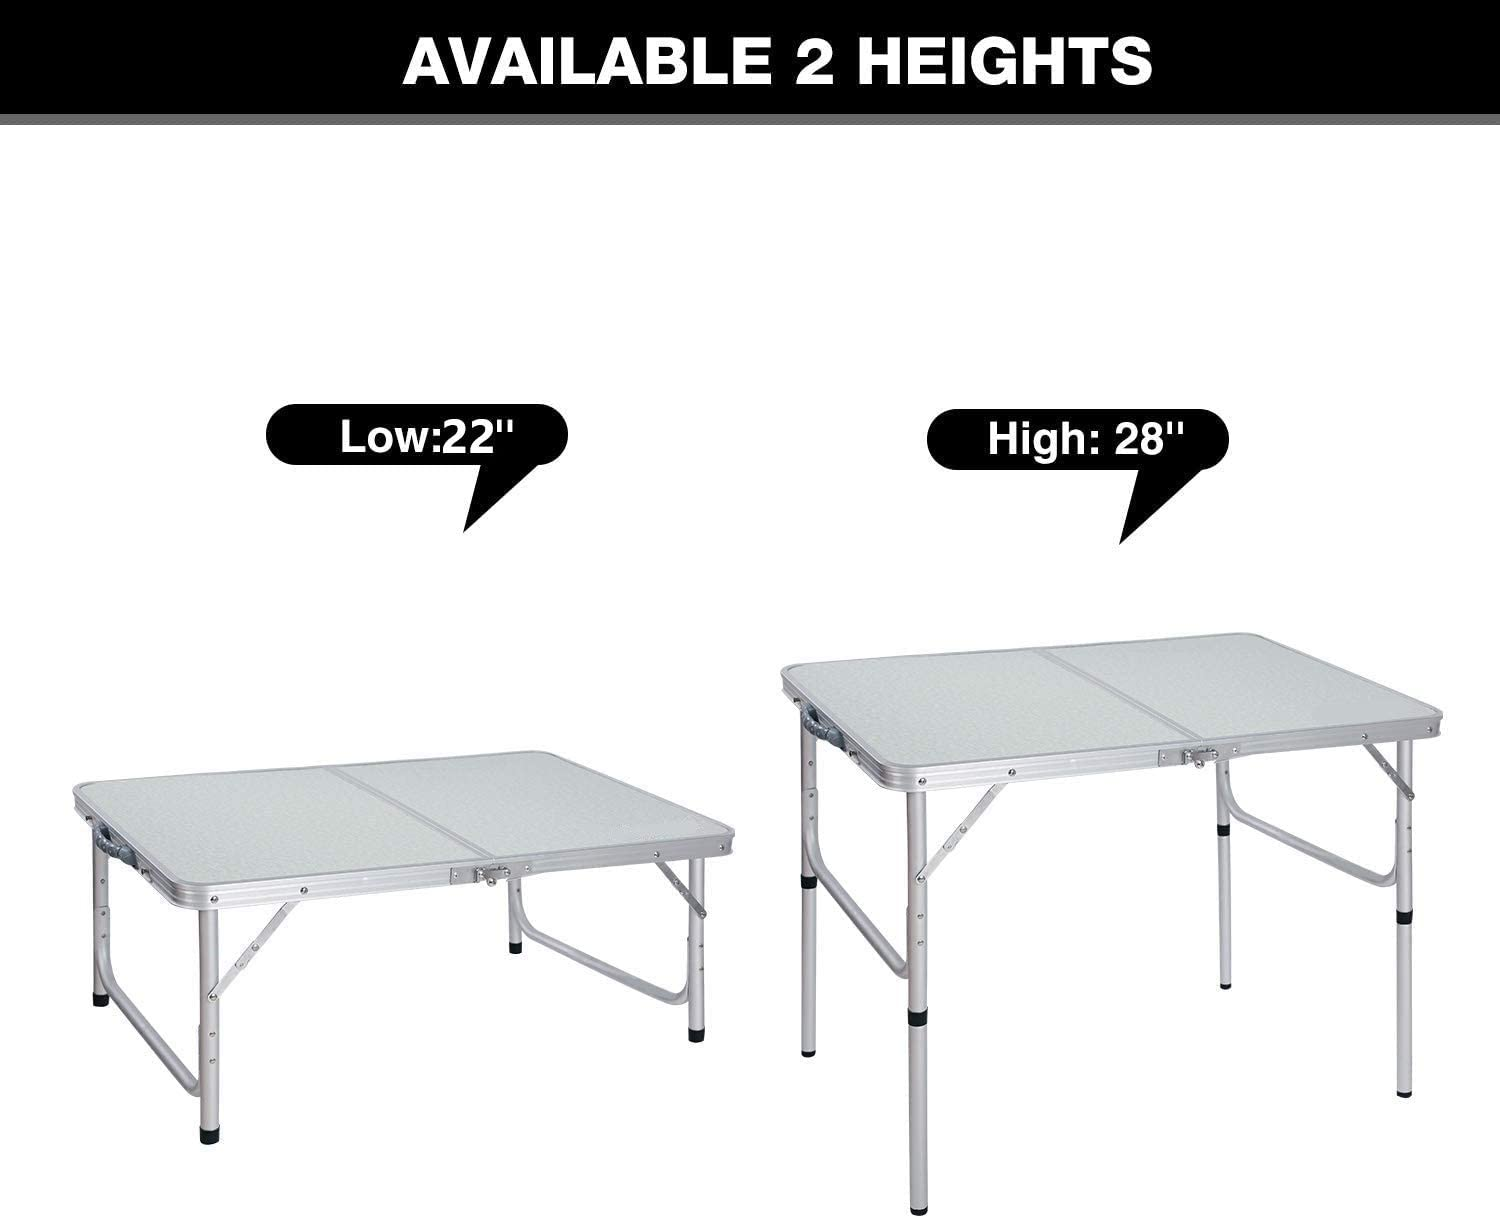 Cimiva Aluminum Folding Table 4 Foot, Adjustable Height Lightweight Portable Camping Table for Picnic Beach Outdoor Indoor, White 48 x 24 inches : Garden & Outdoor